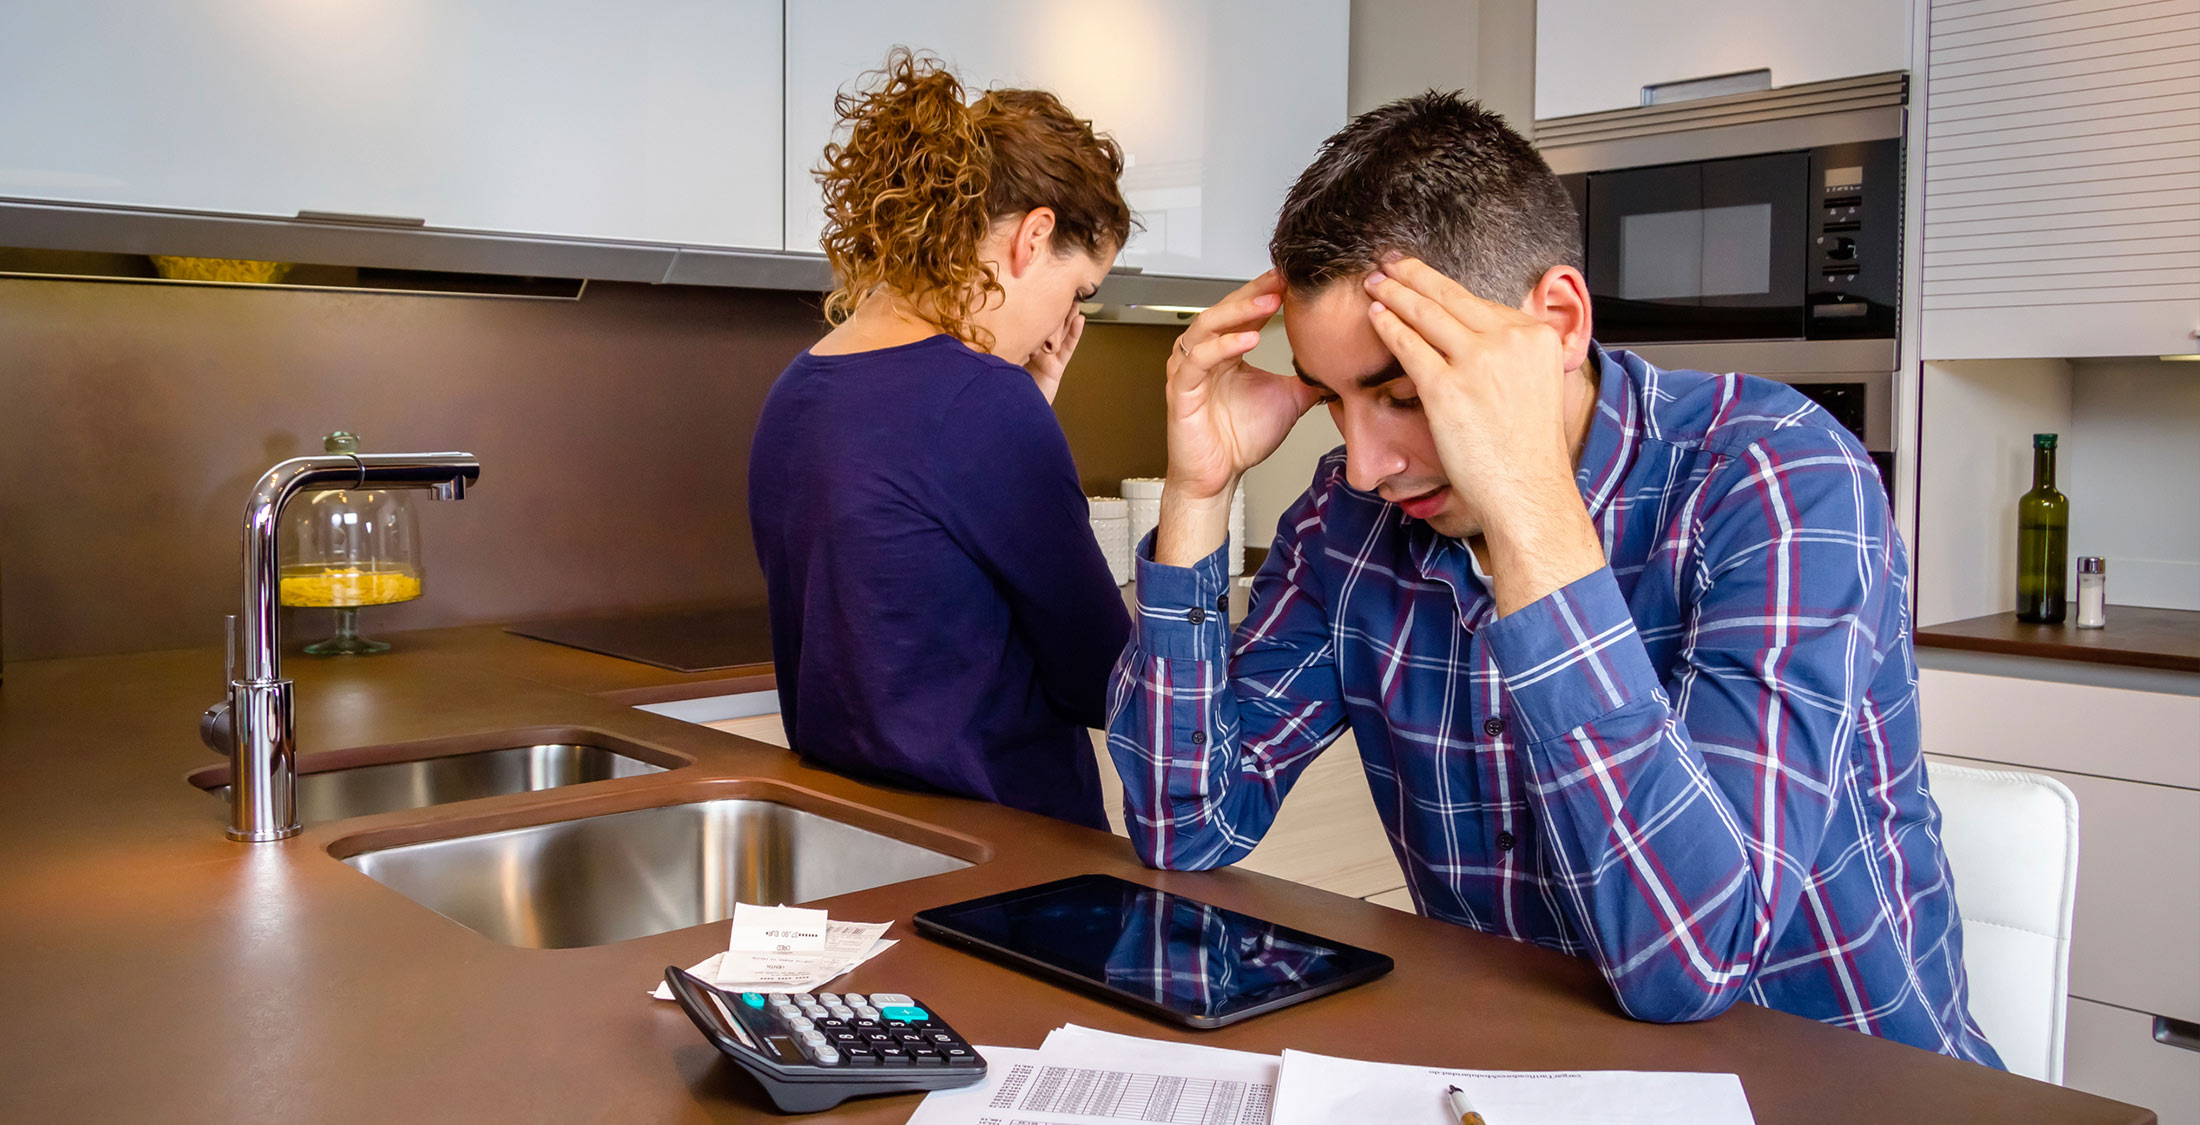 man woman kitchen fighting headache taxes ipad paperwork